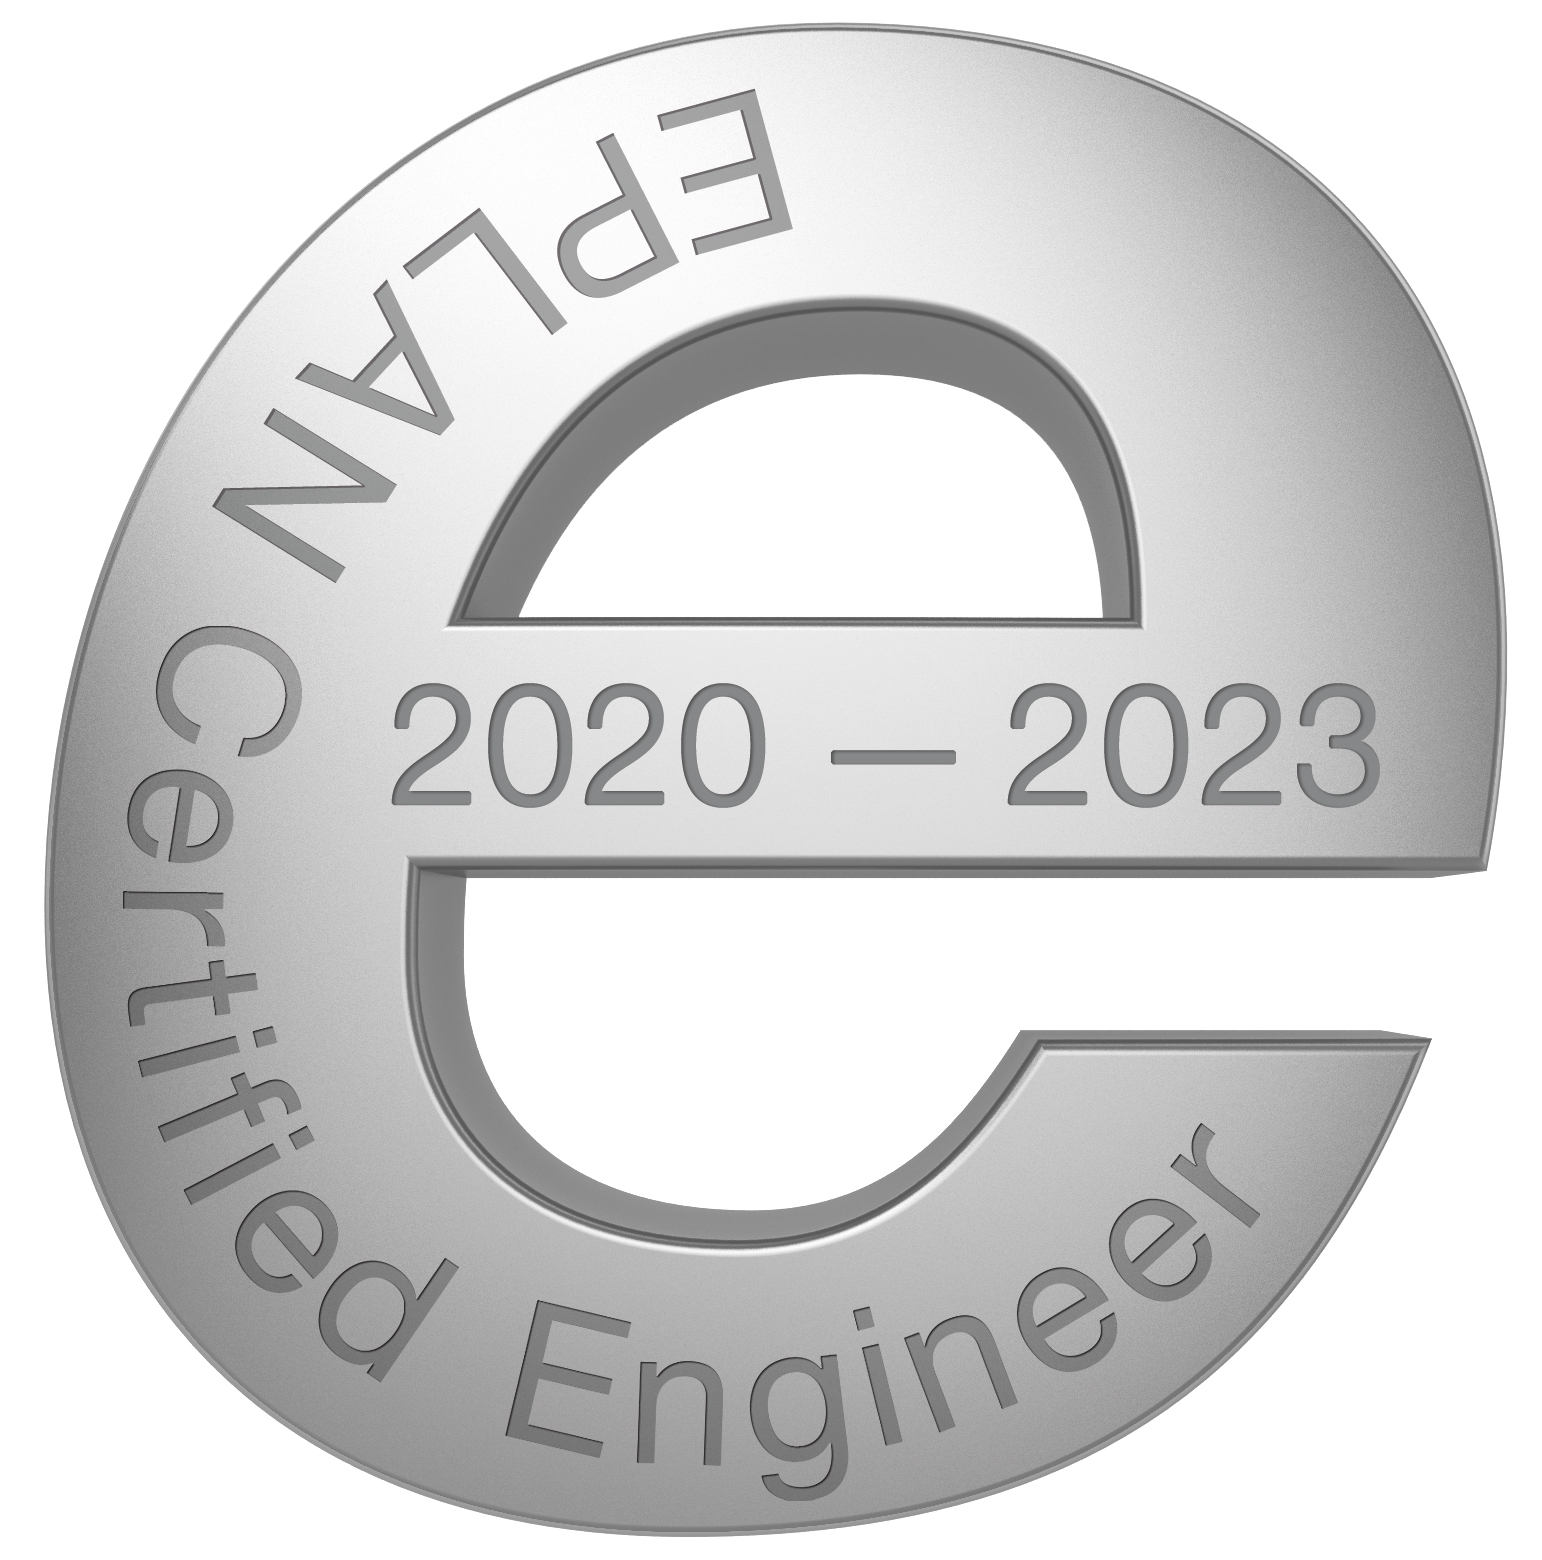 Eplan Certified Engineer 2020 -2023